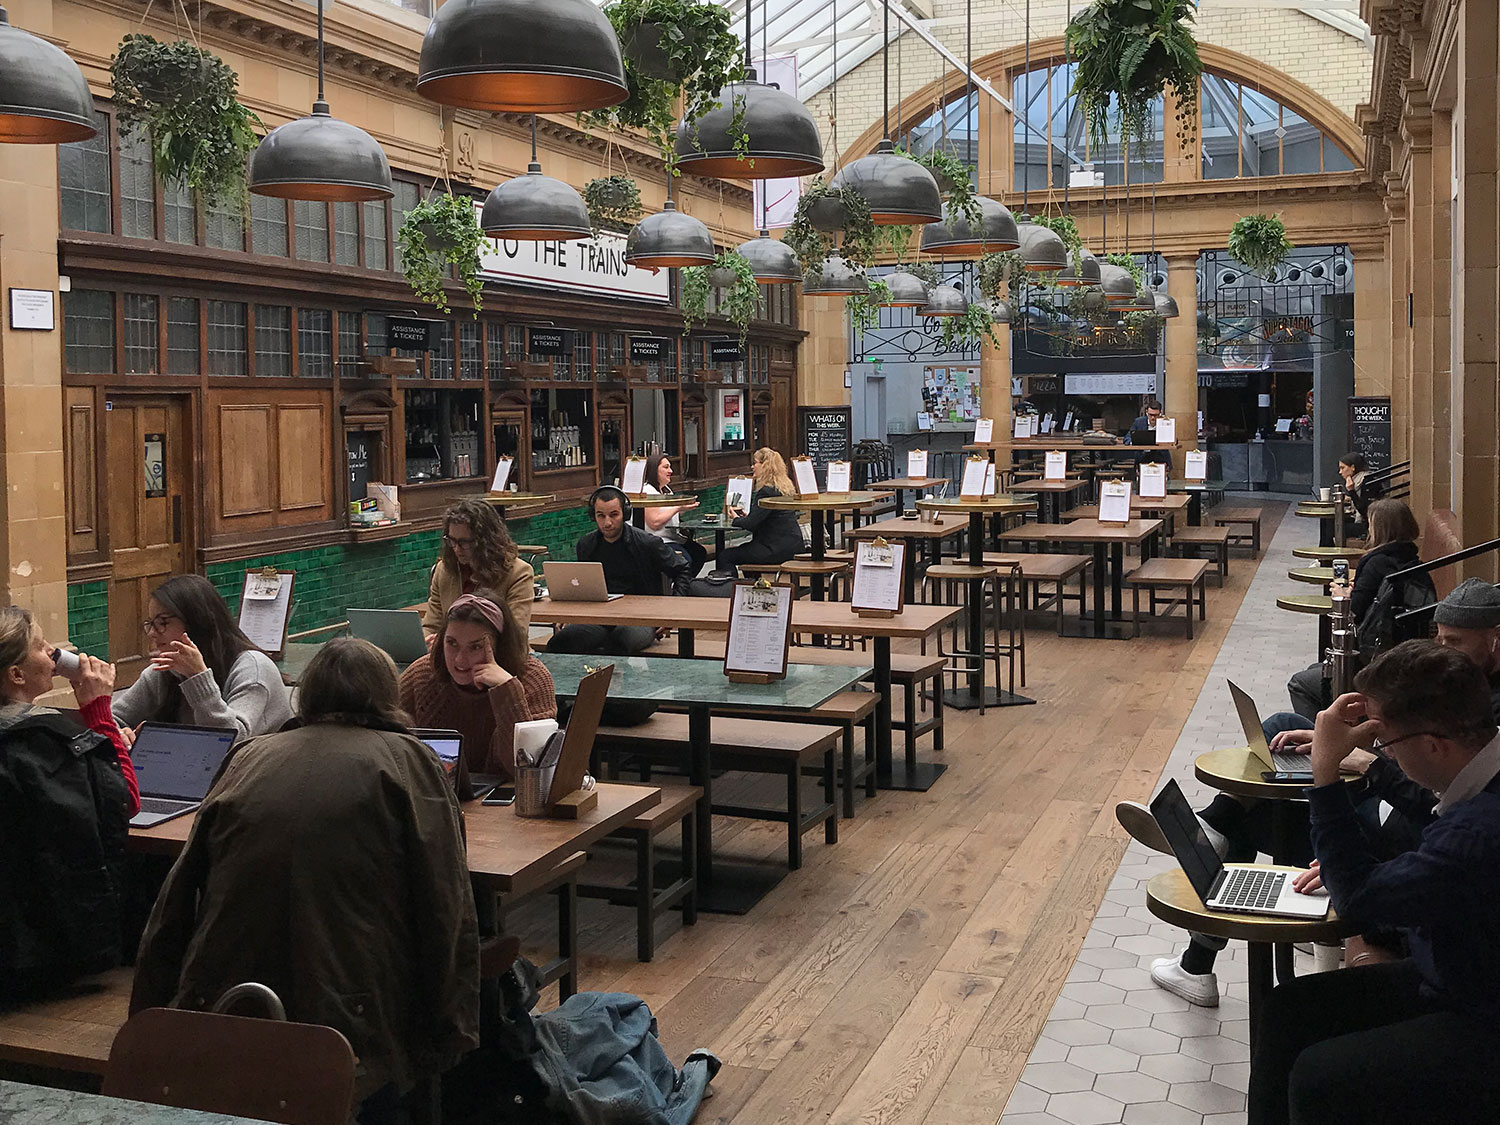 cafe working - fulham broadway market hall